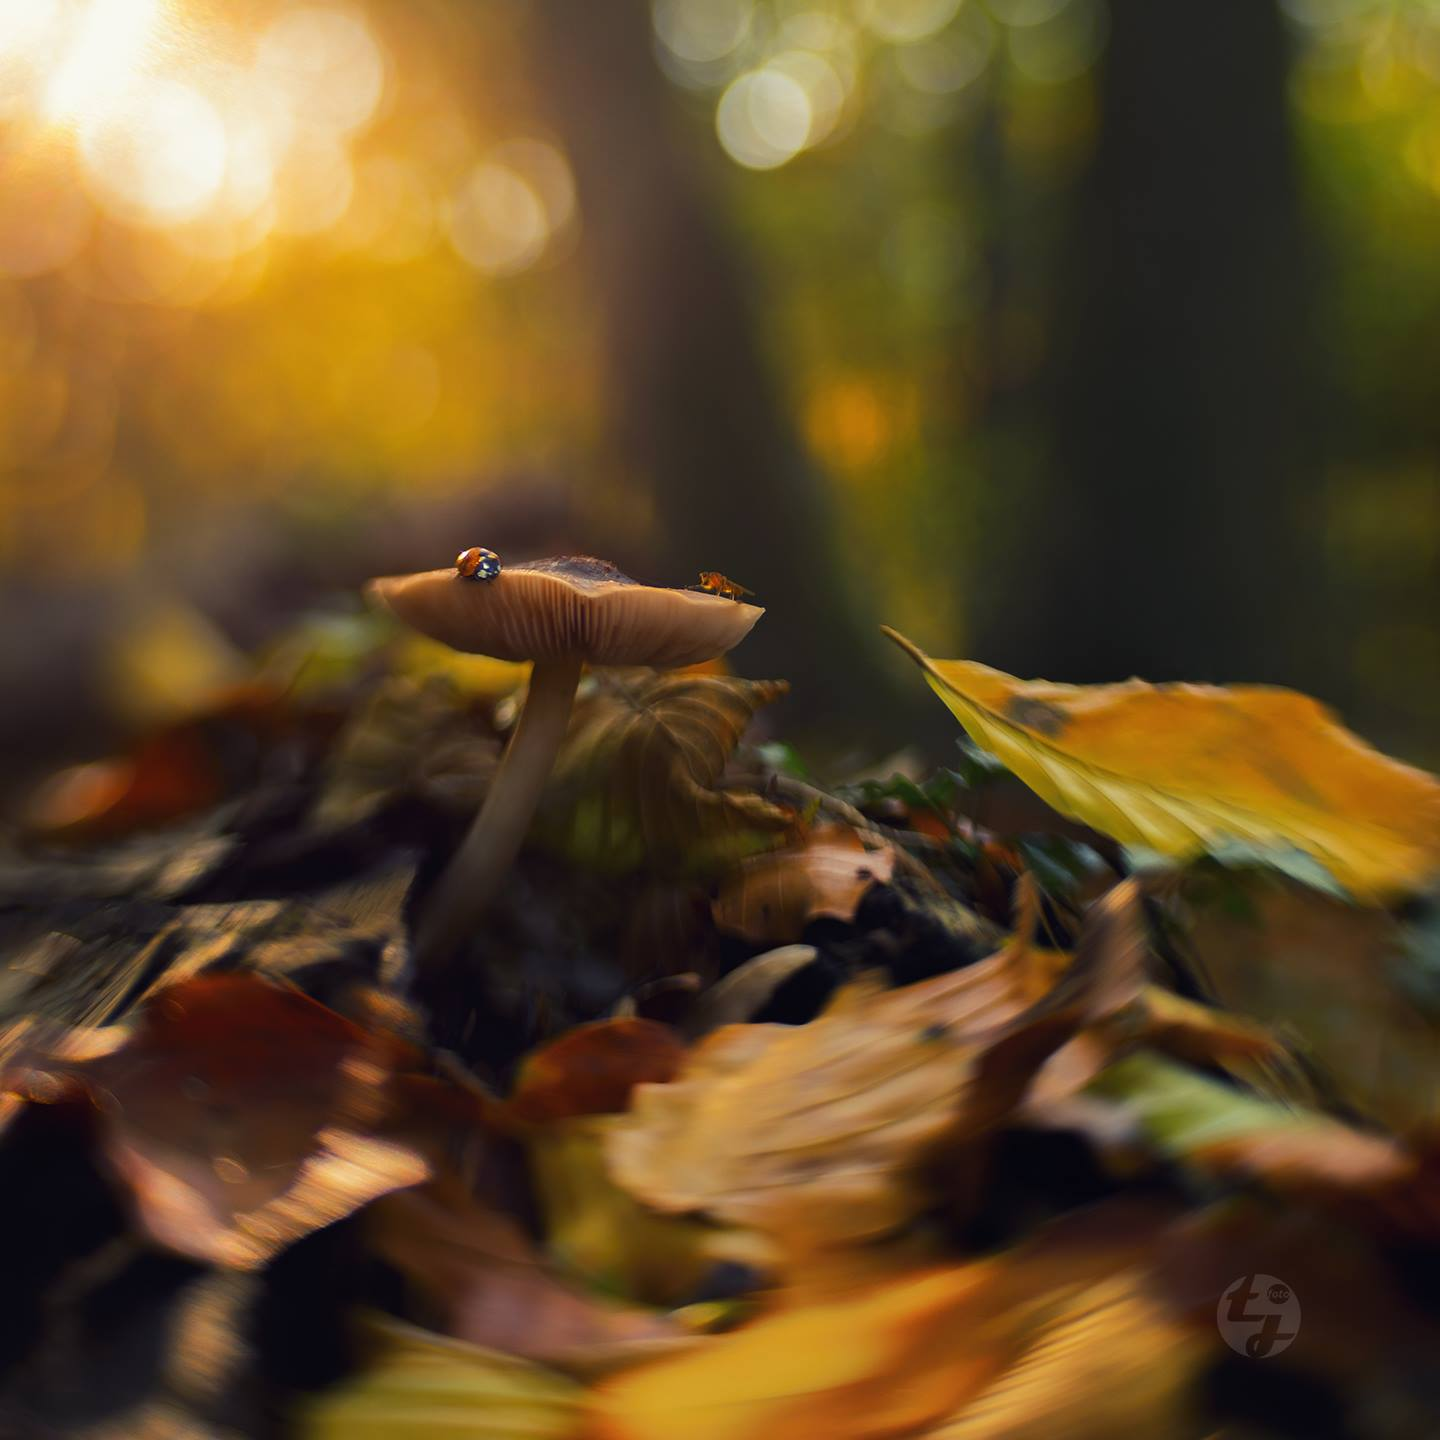 ladybug on mushroom in forest fall leaves golden light featured photos lensbaby